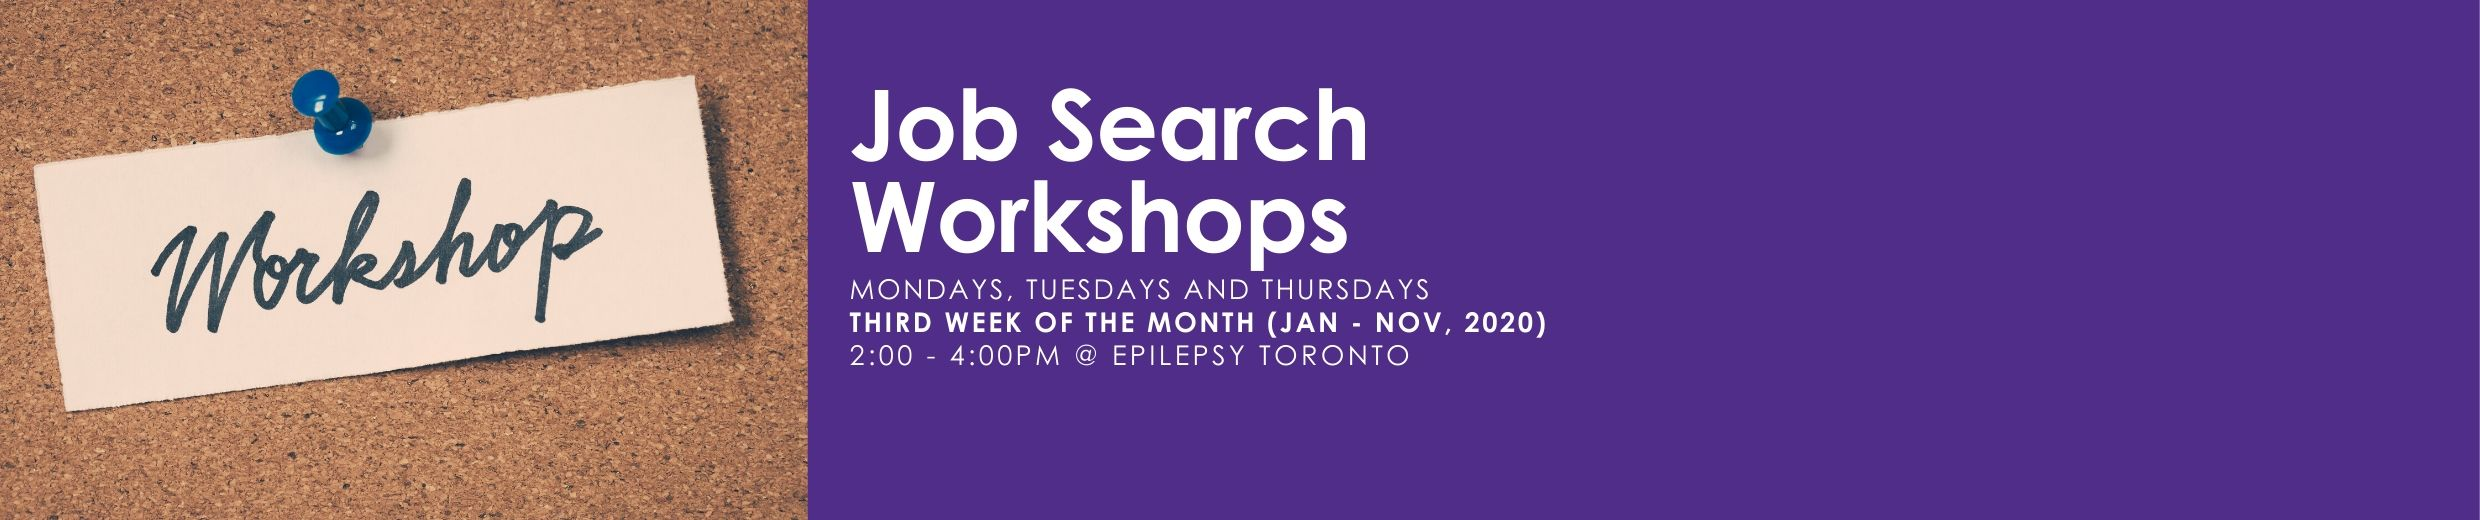 Job Search Workshops